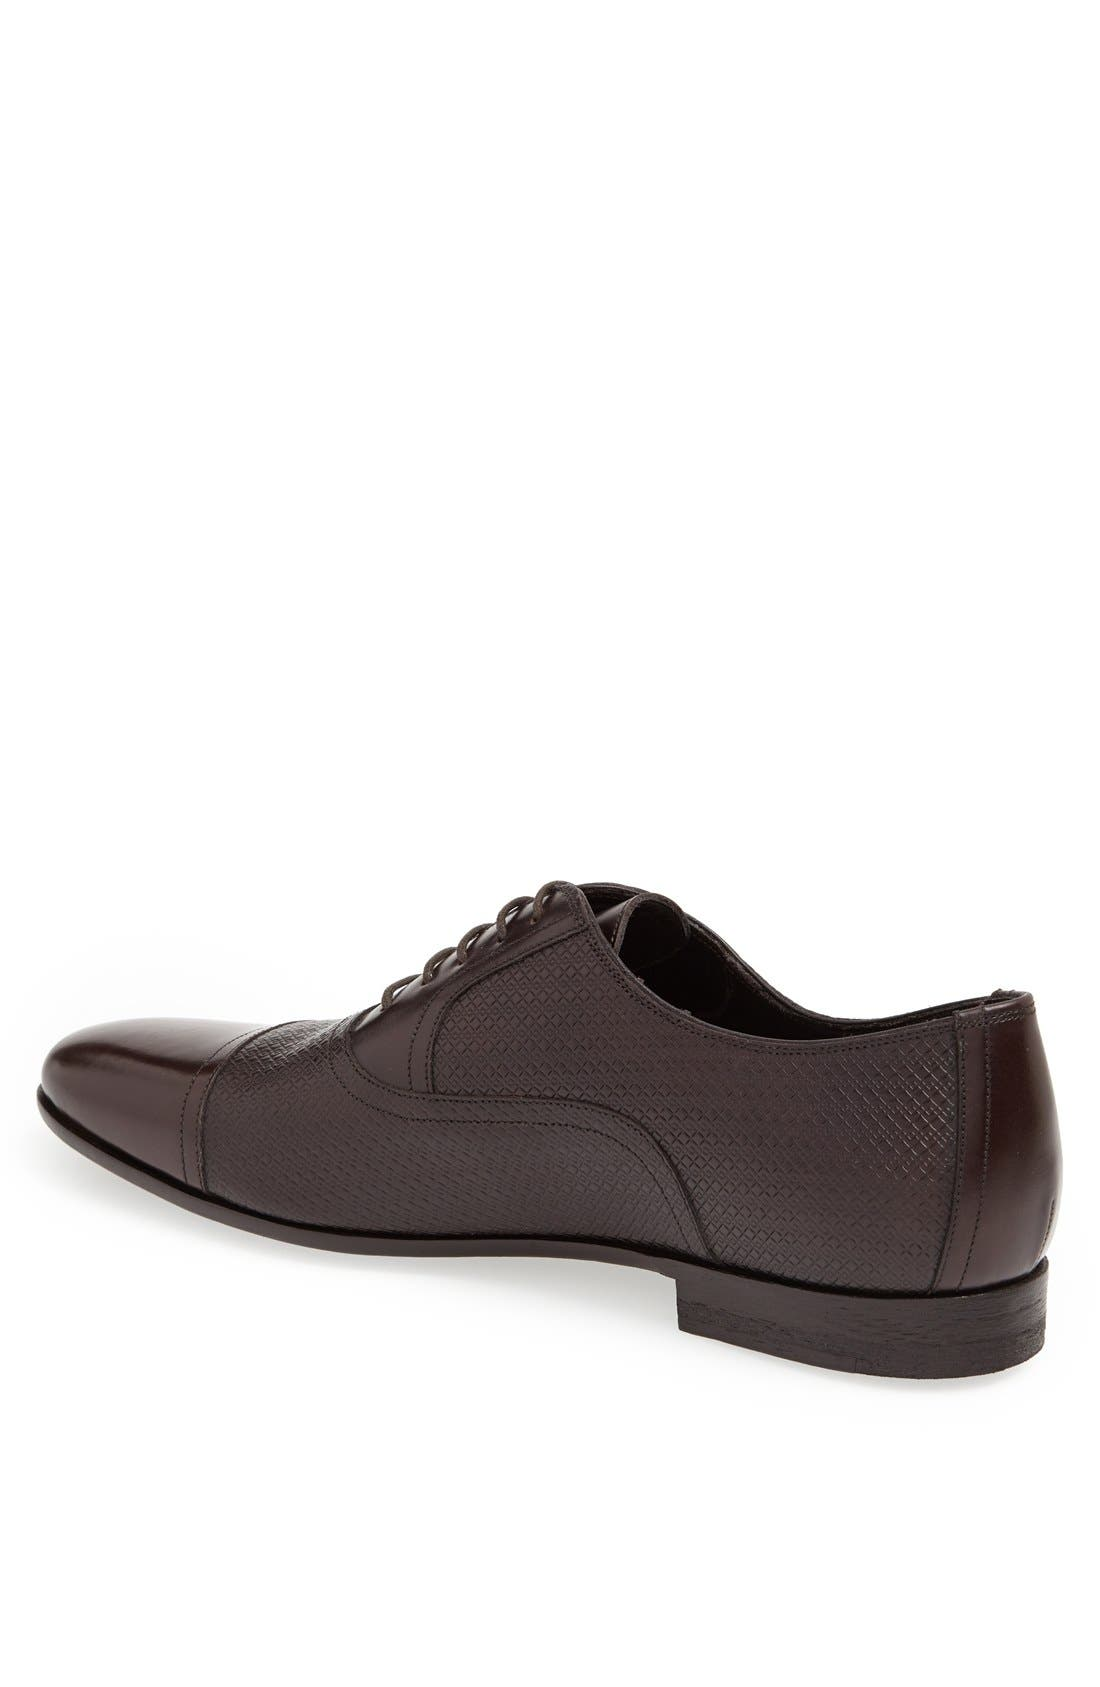 Alternate Image 2  - Canali Cap Toe Oxford (Men)